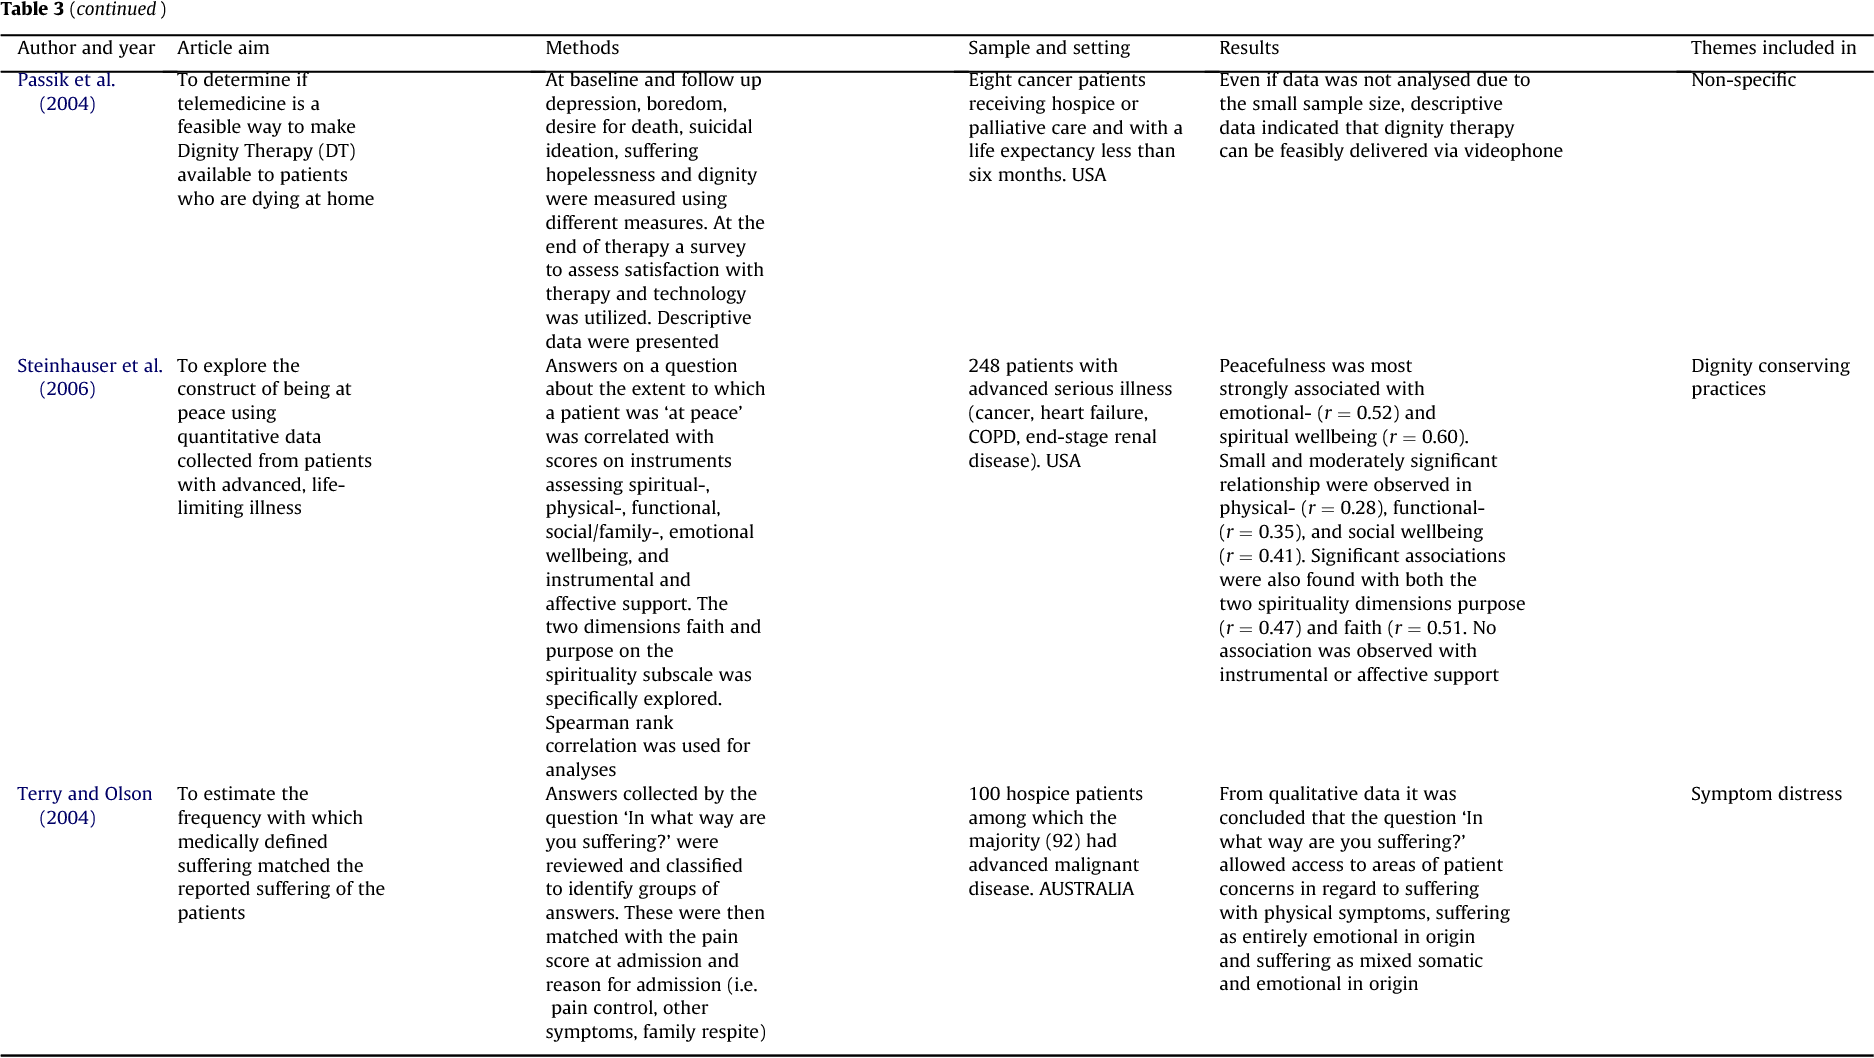 Table 3 from Dignity conserving care at end-of-life: a narrative